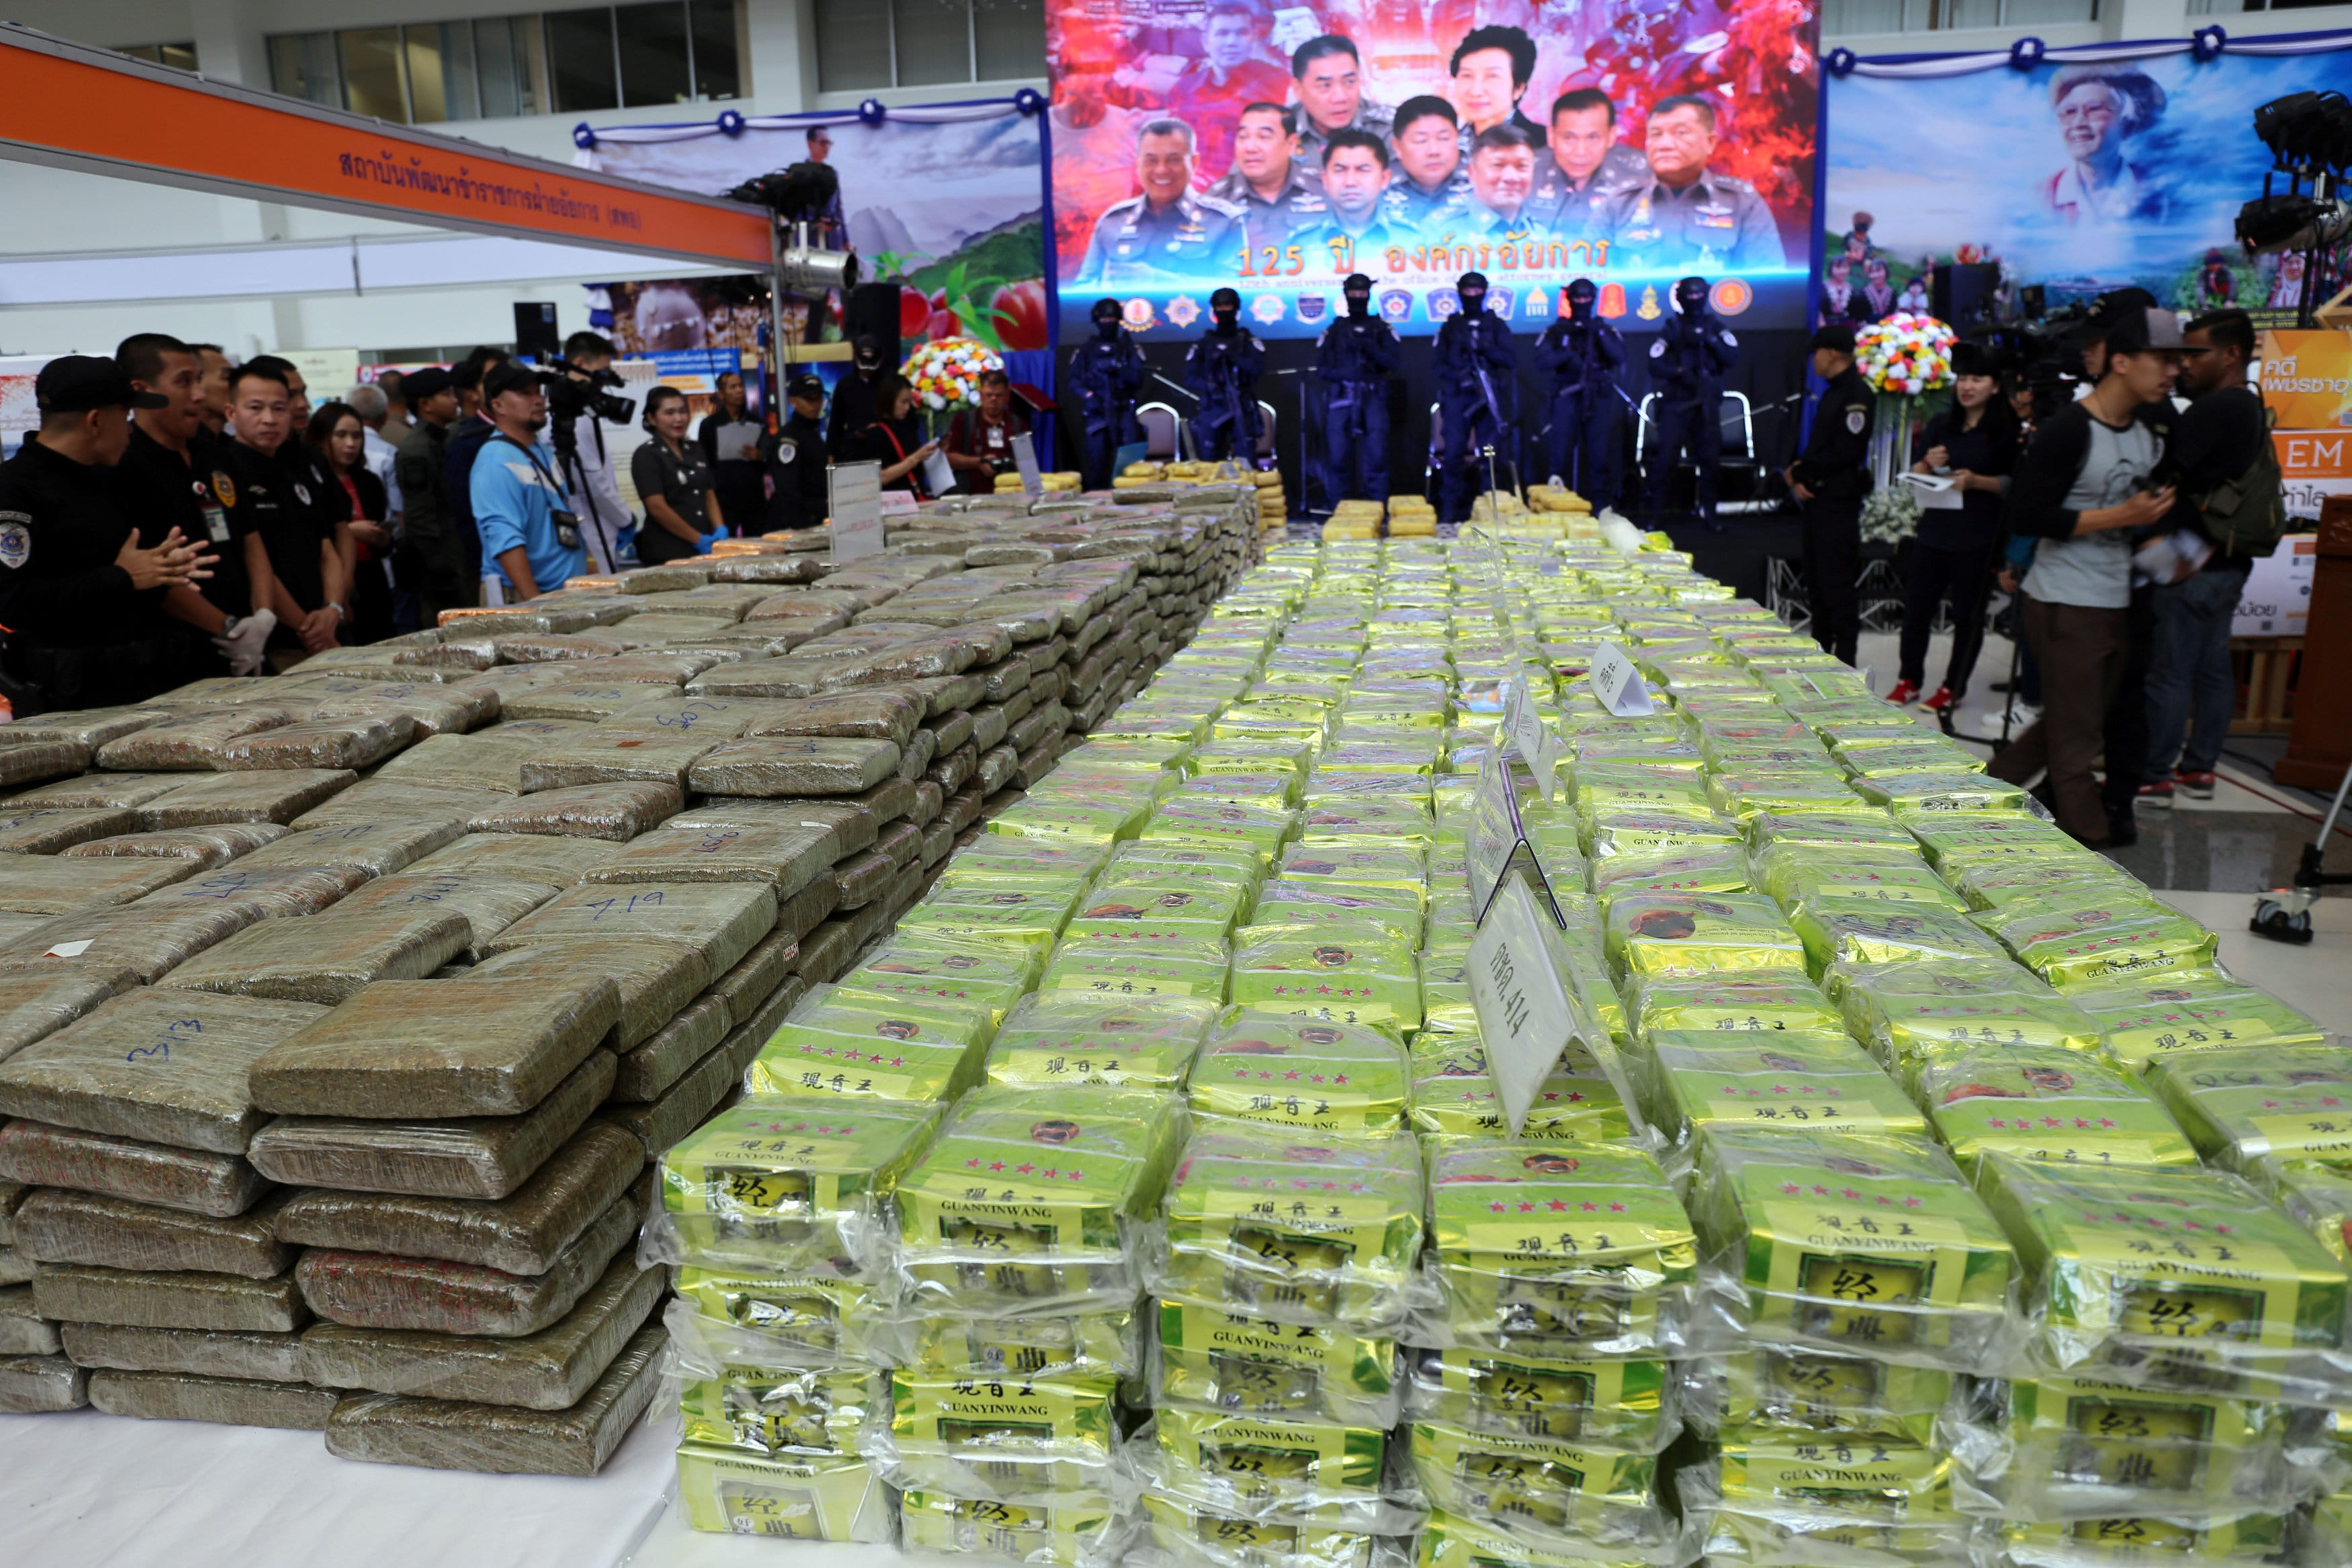 Image [Thailand makes one of its 'largest ever' crystal methamphetamine busts seizing US $22.42 million worth of the drug; news conference in Bangkok, Thailand April 3, 2018. REUTERS / Panu Wongcha-um]